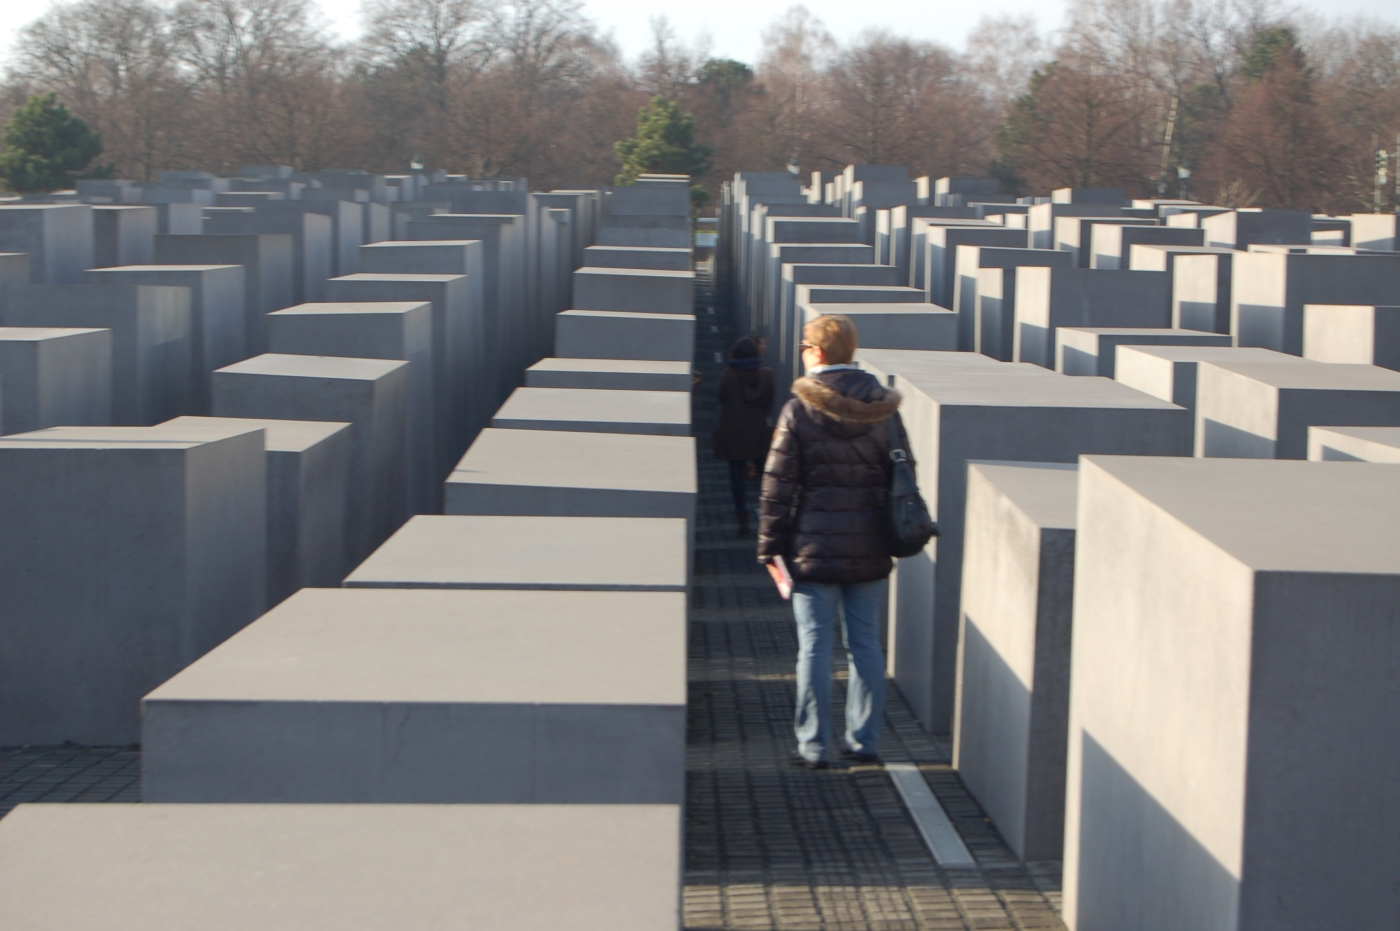 Holocaust-Mahnmal Berlin 2014